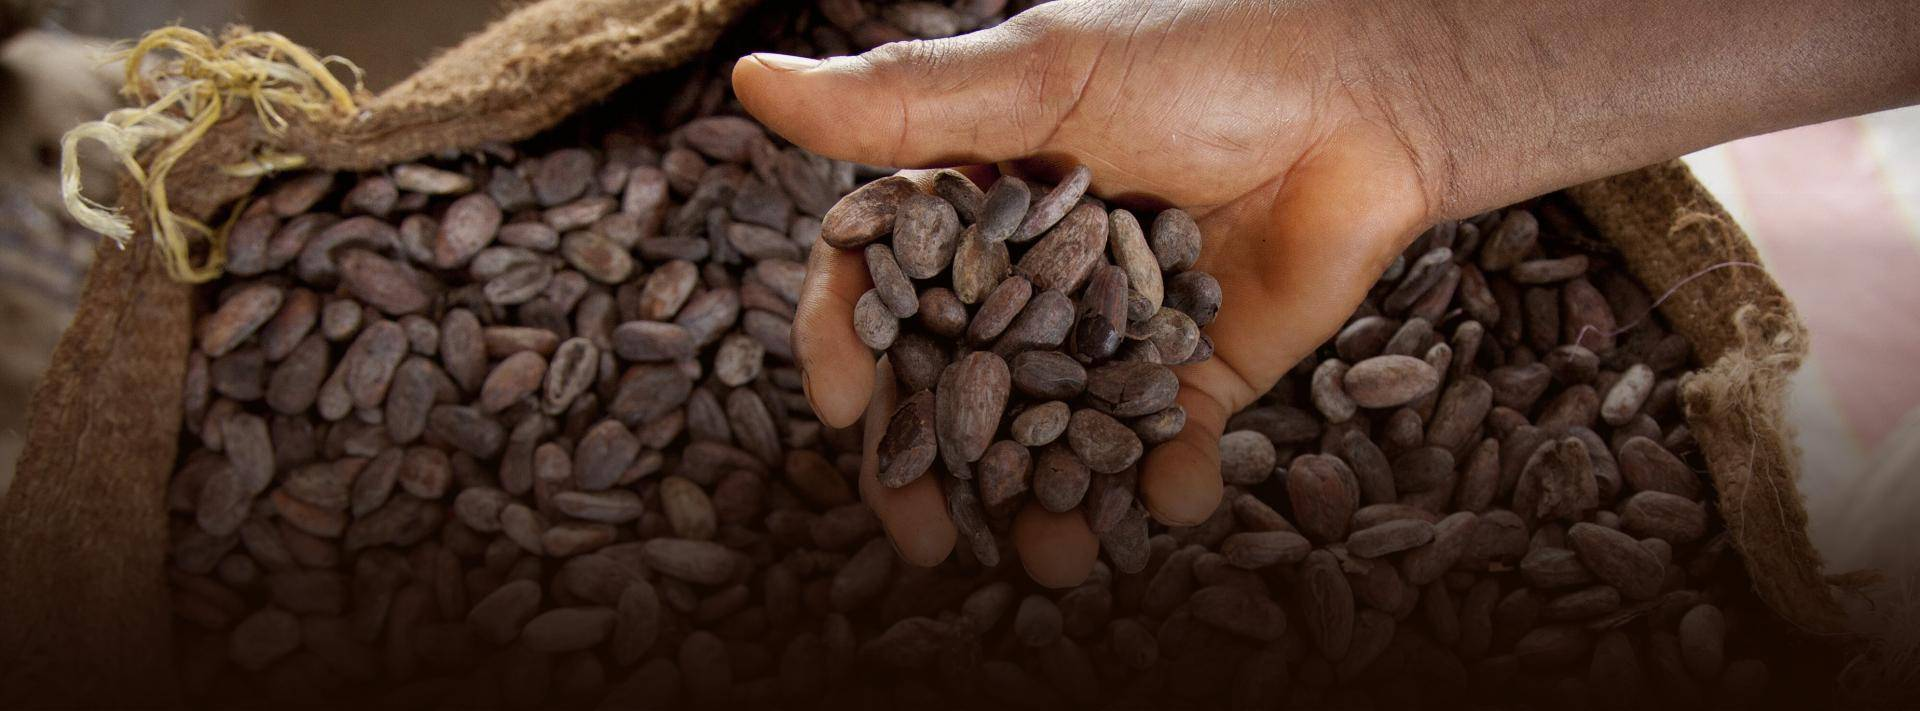 Bensdorp – Masters of Cacao since 1840